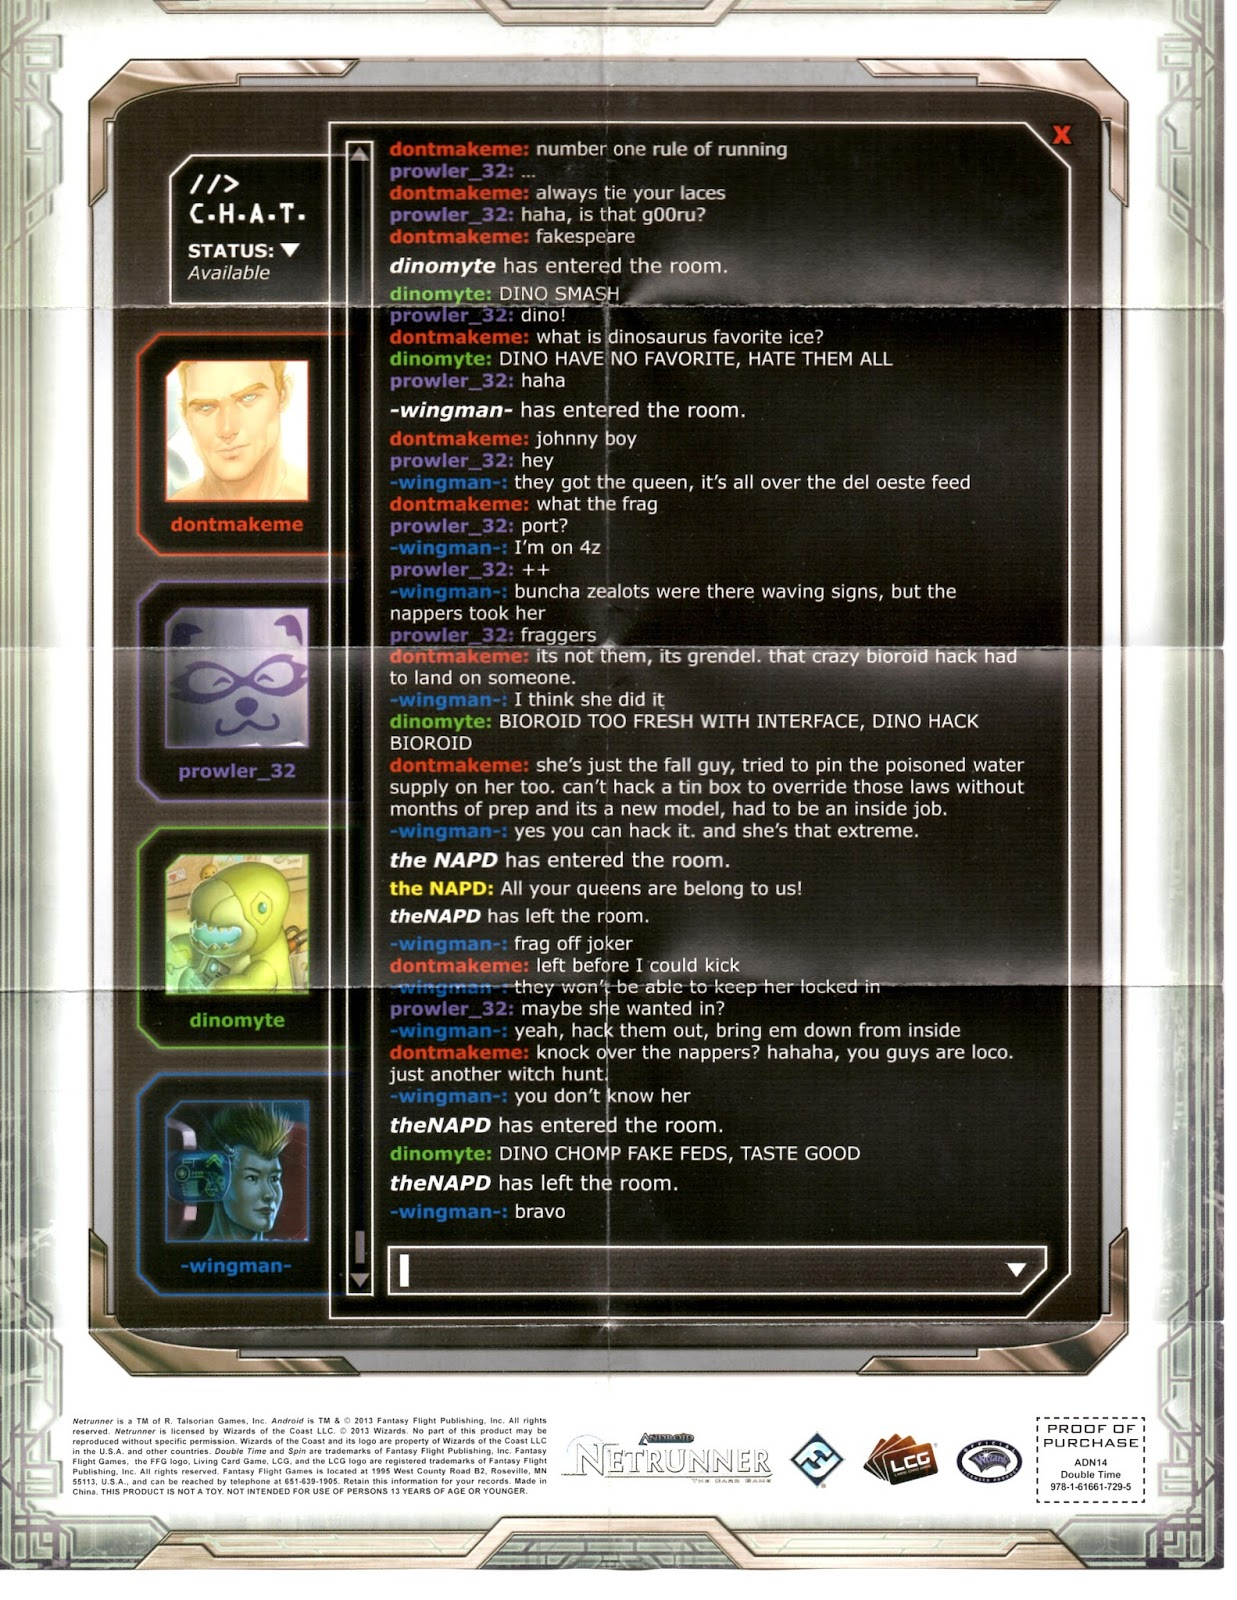 Corporate Troubleshooter - An Android:Netrunner analysis blog